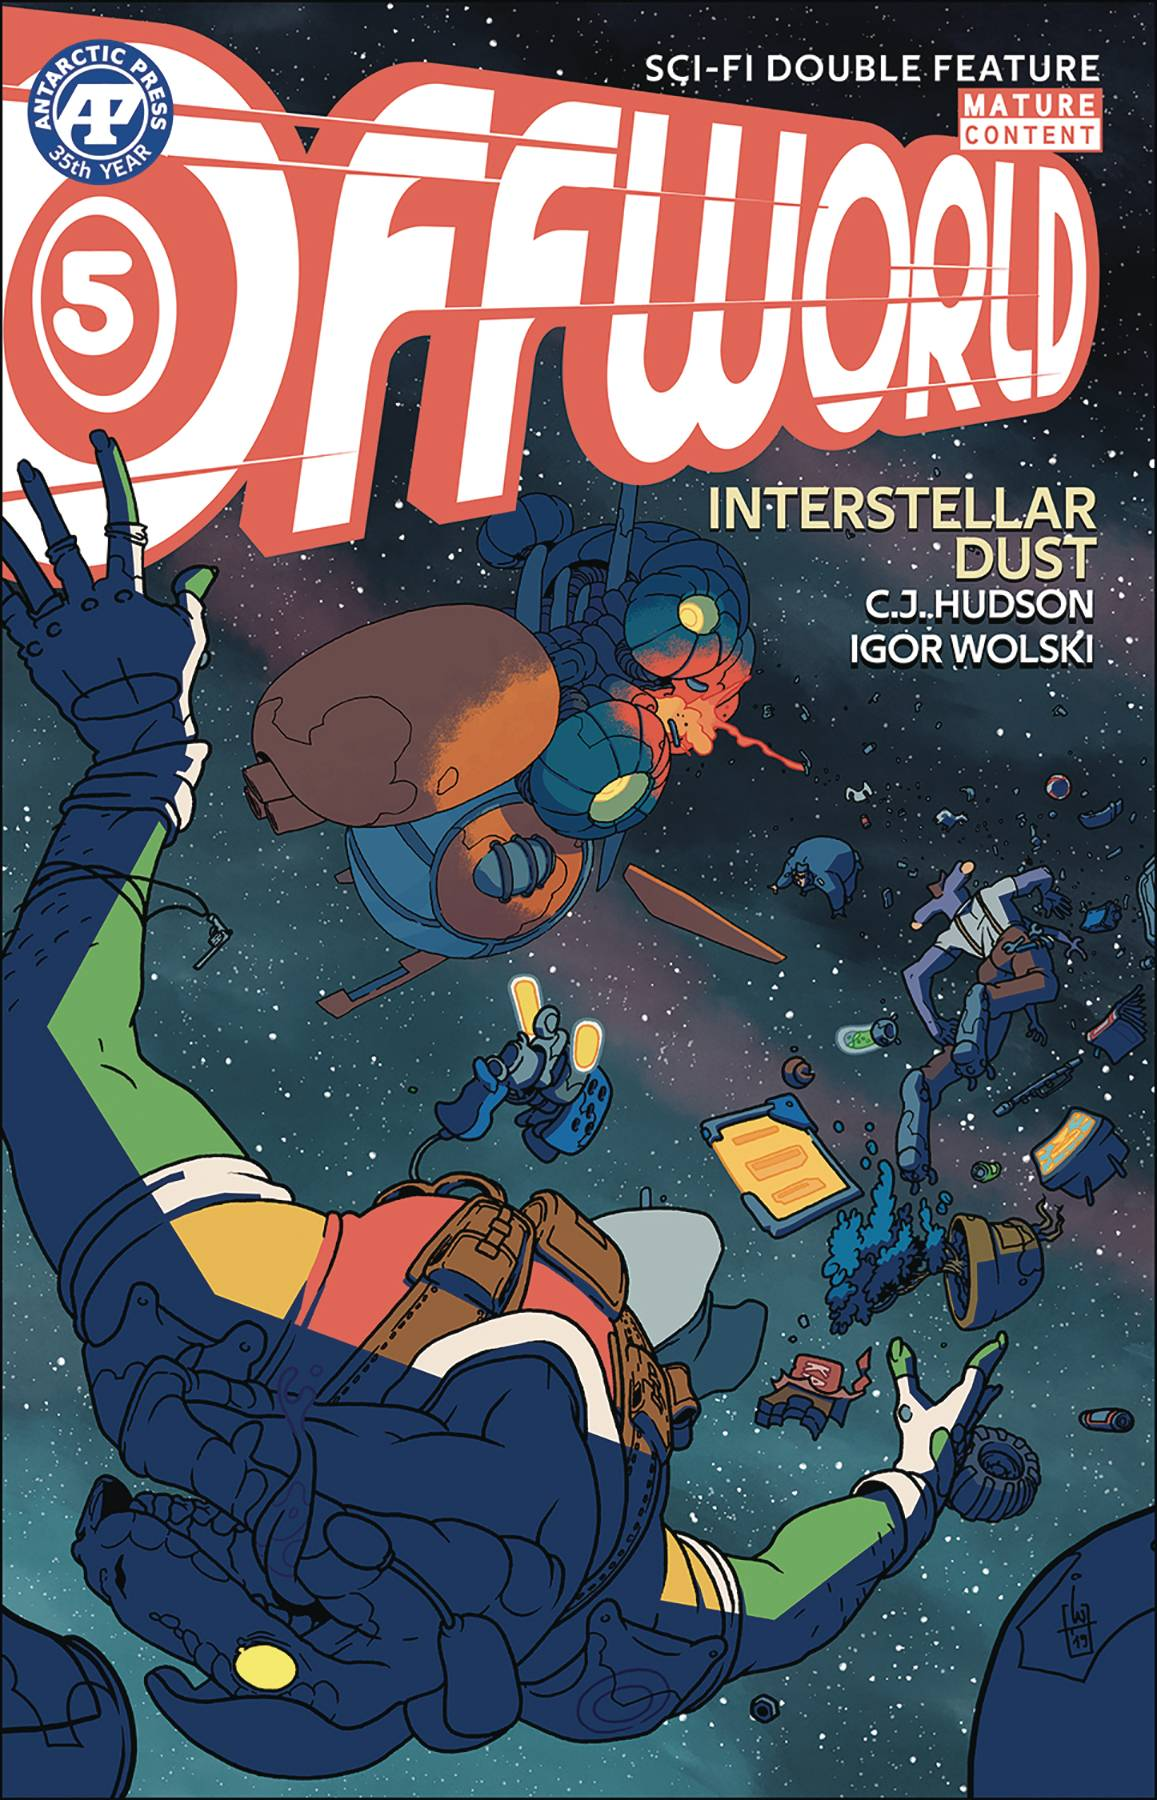 Offworld Sci Fi: Double Feature #5 (2020)